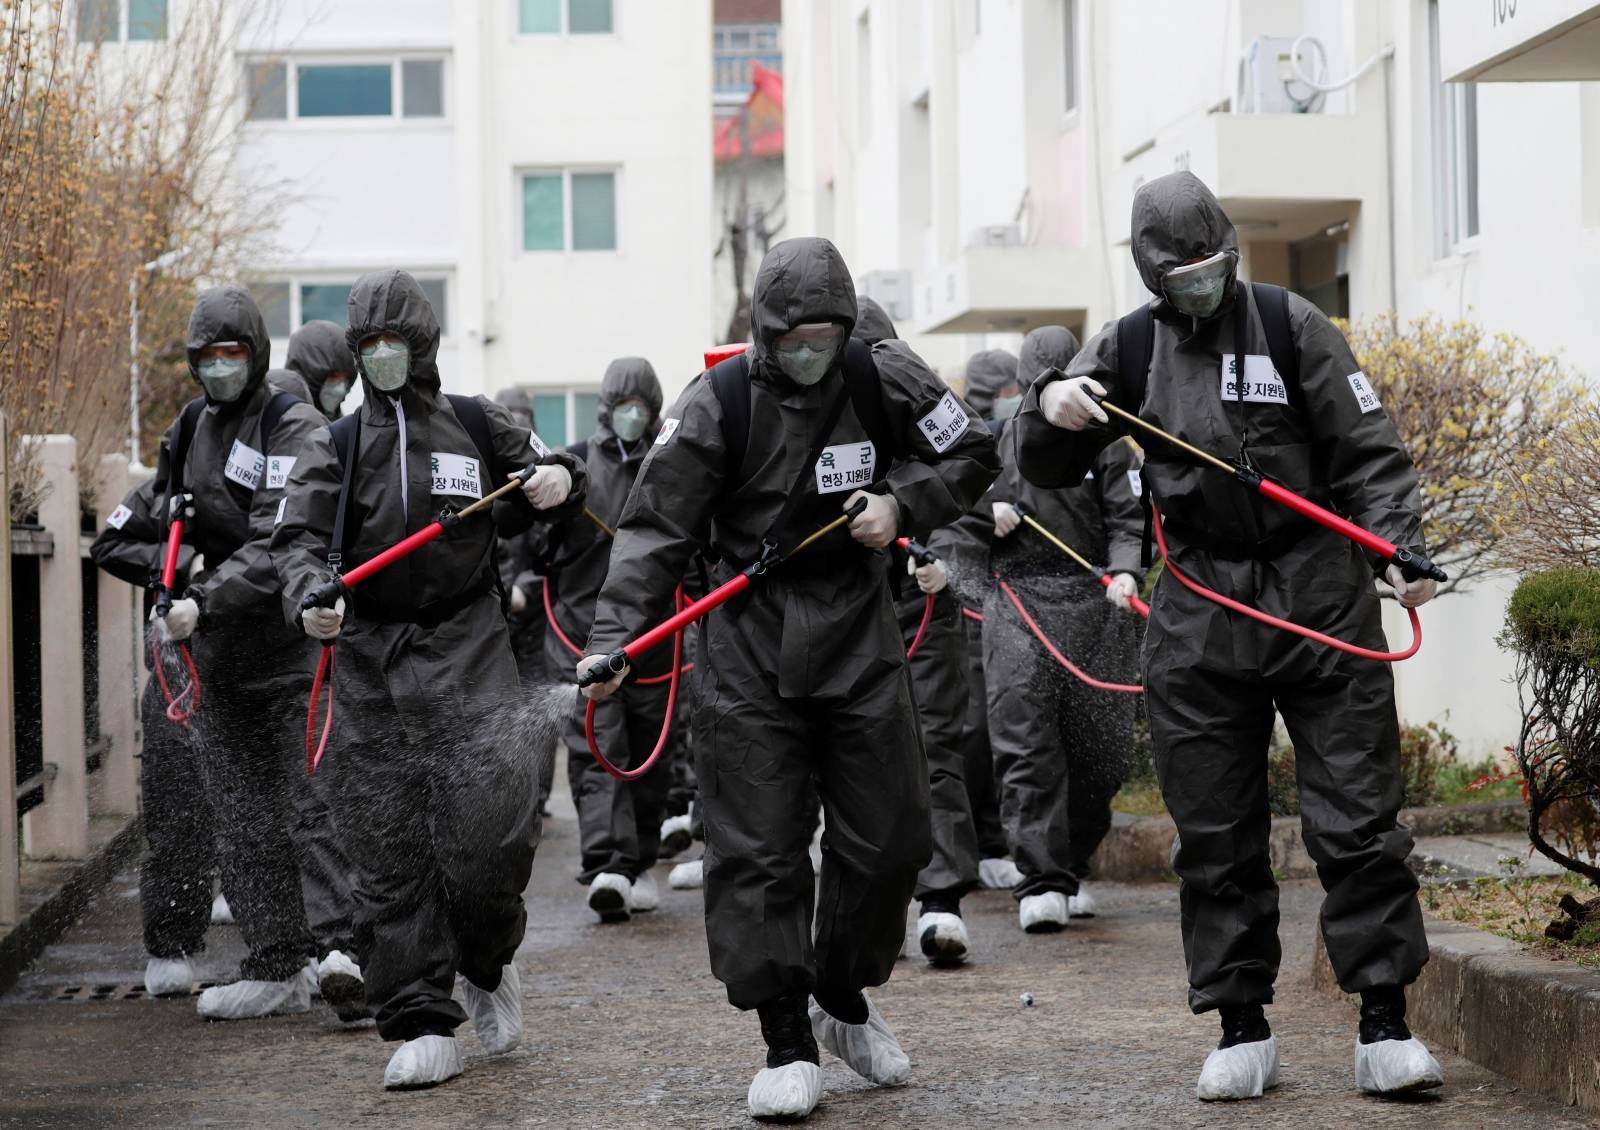 South Korean soldiers spray disinfectants inside an apartment complex which is under cohort isolation after mass infection of coronavirus disease (COVID-19) in Daegu